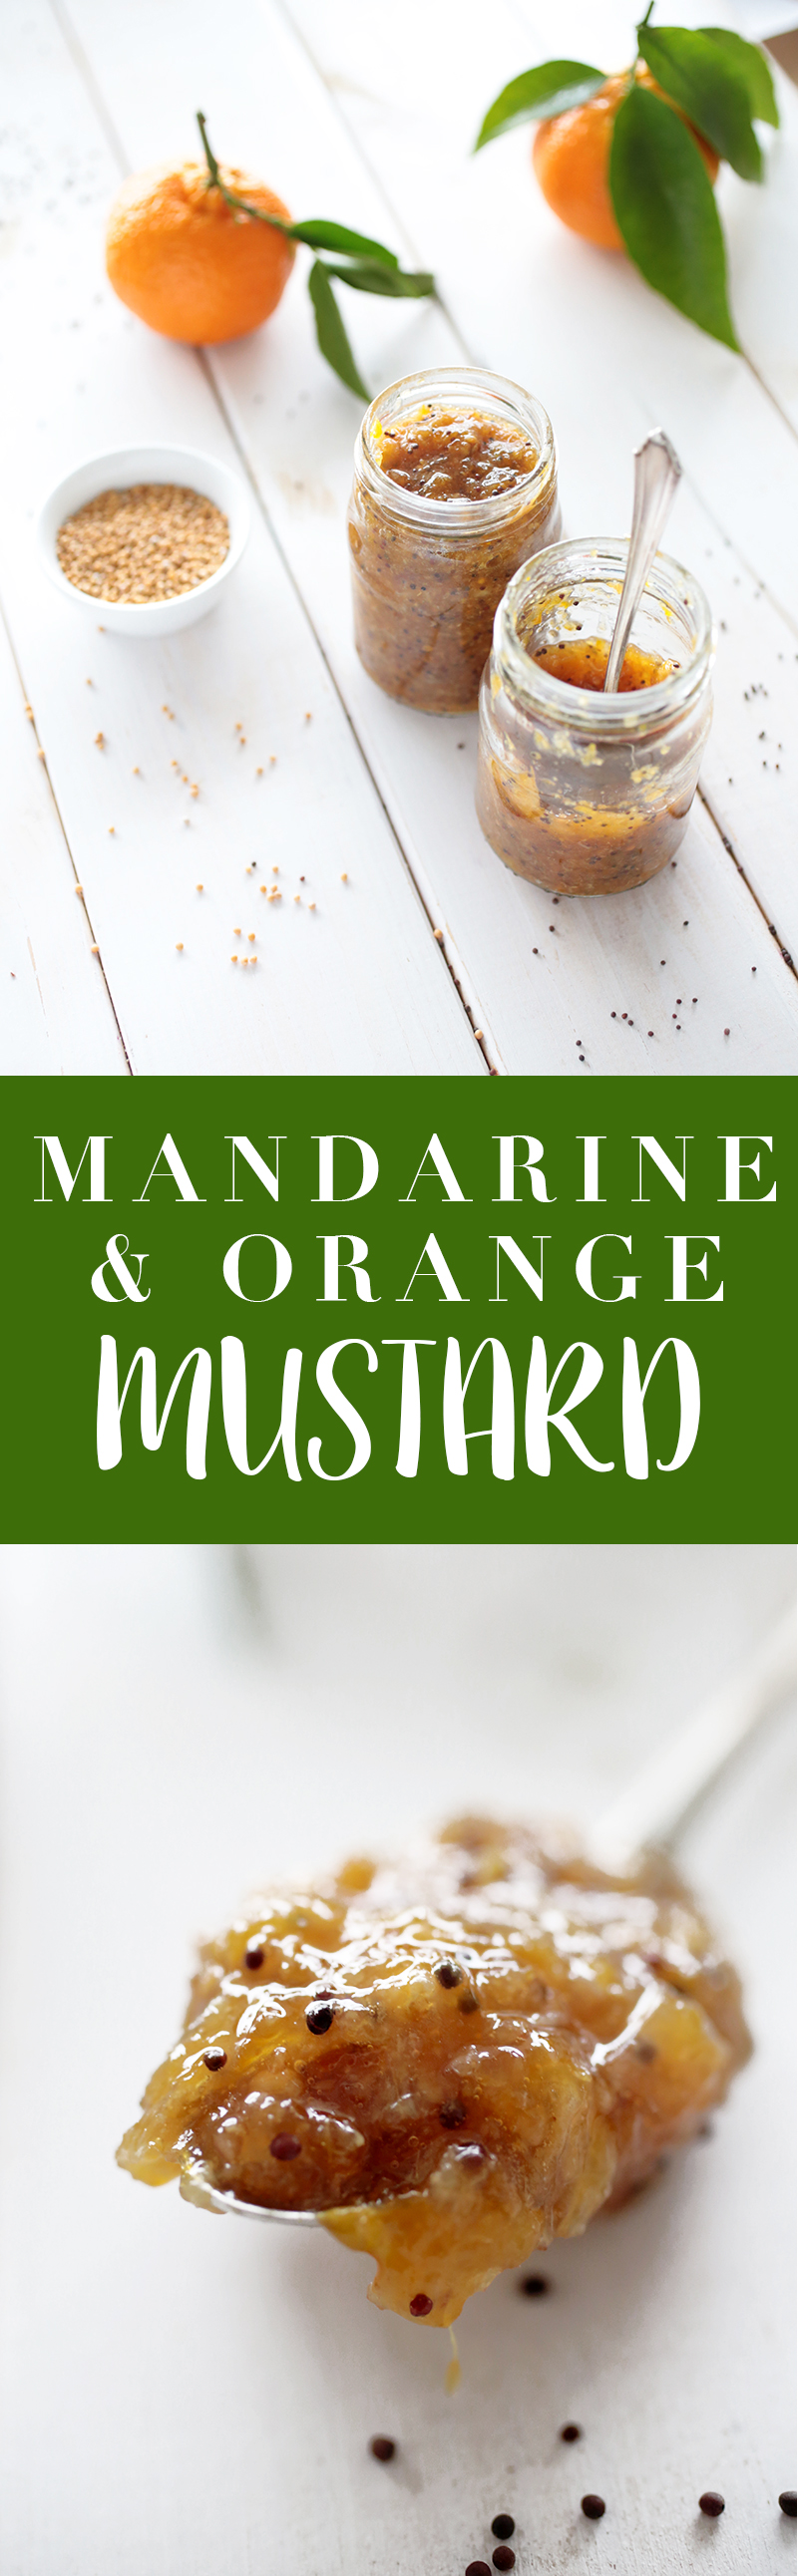 Mandarine and Orange Mustard